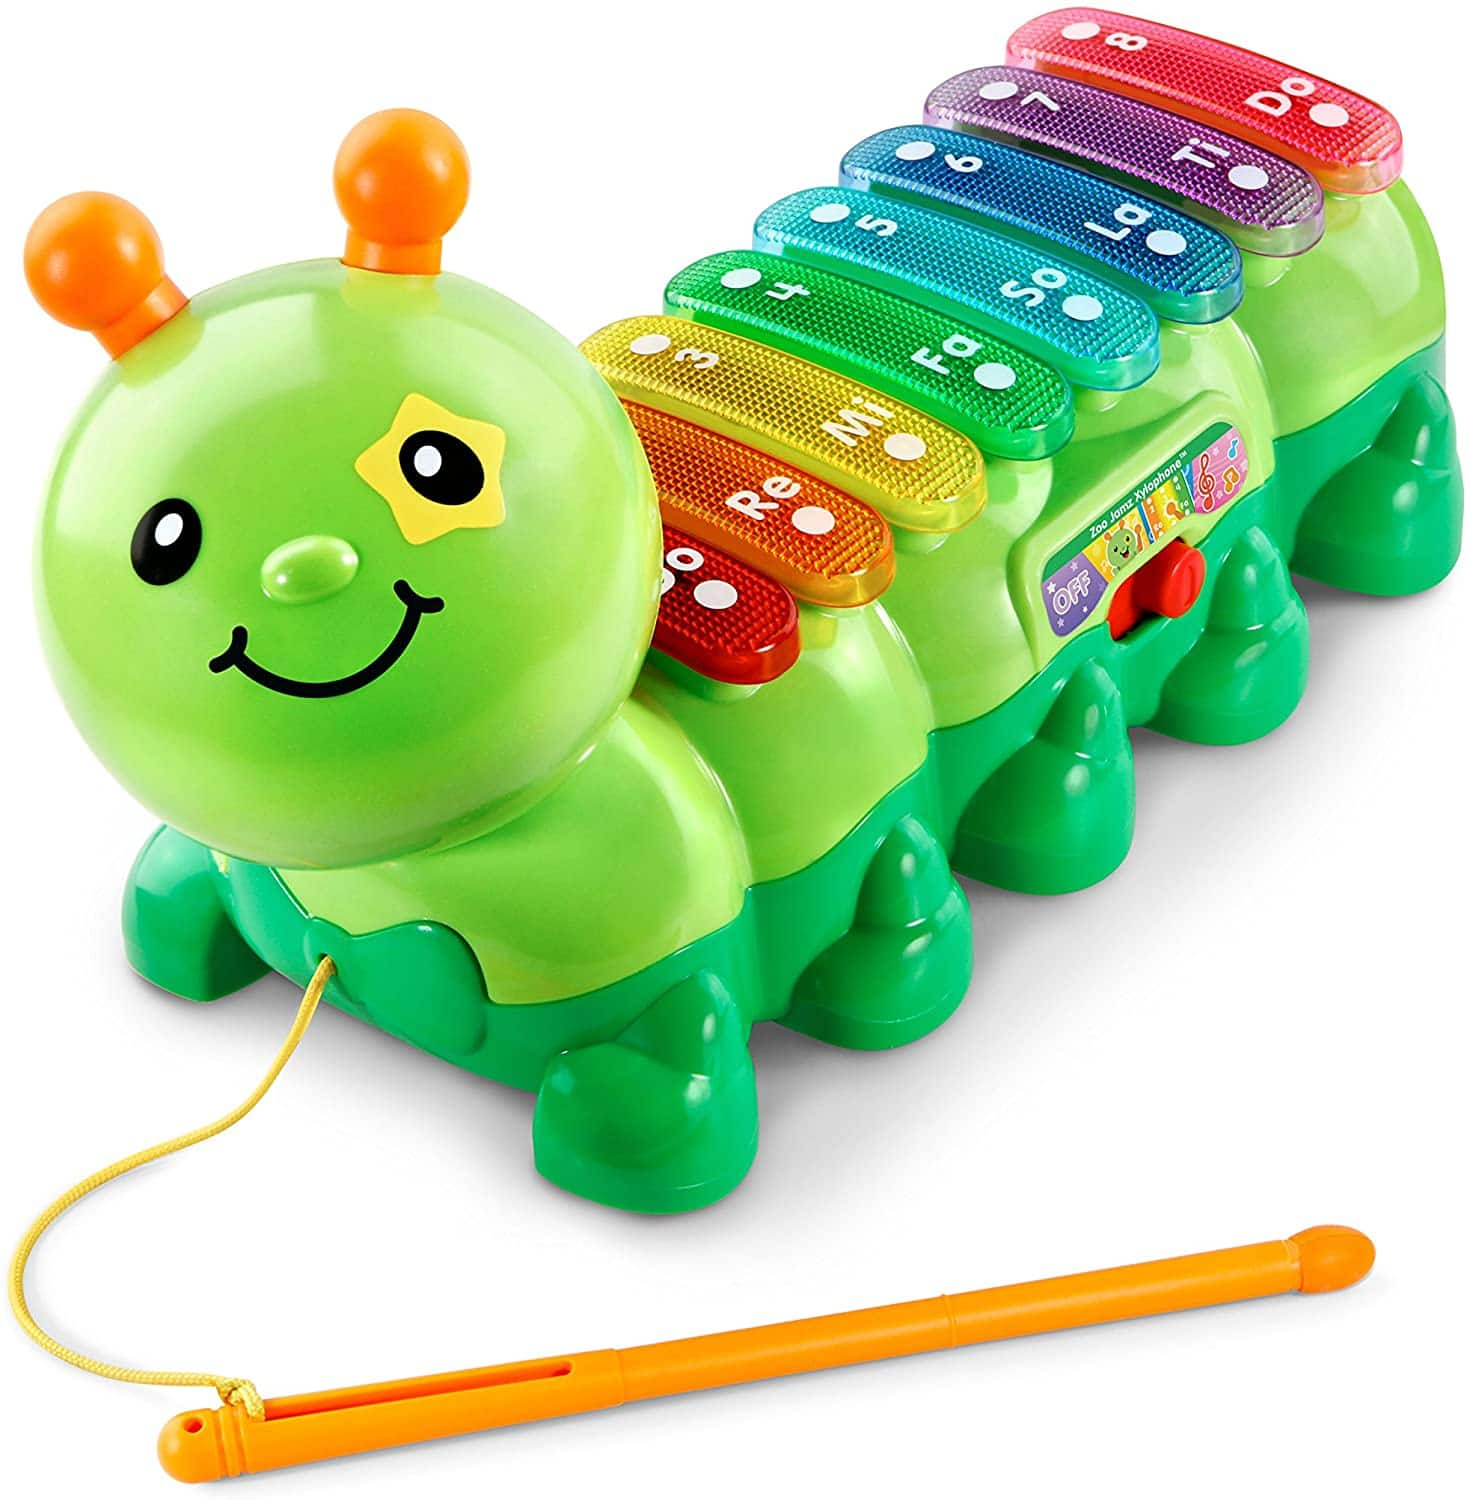 VTech Zoo Jamz Xylophone $7.49 + free shipping w/ Prime or on orders over $25